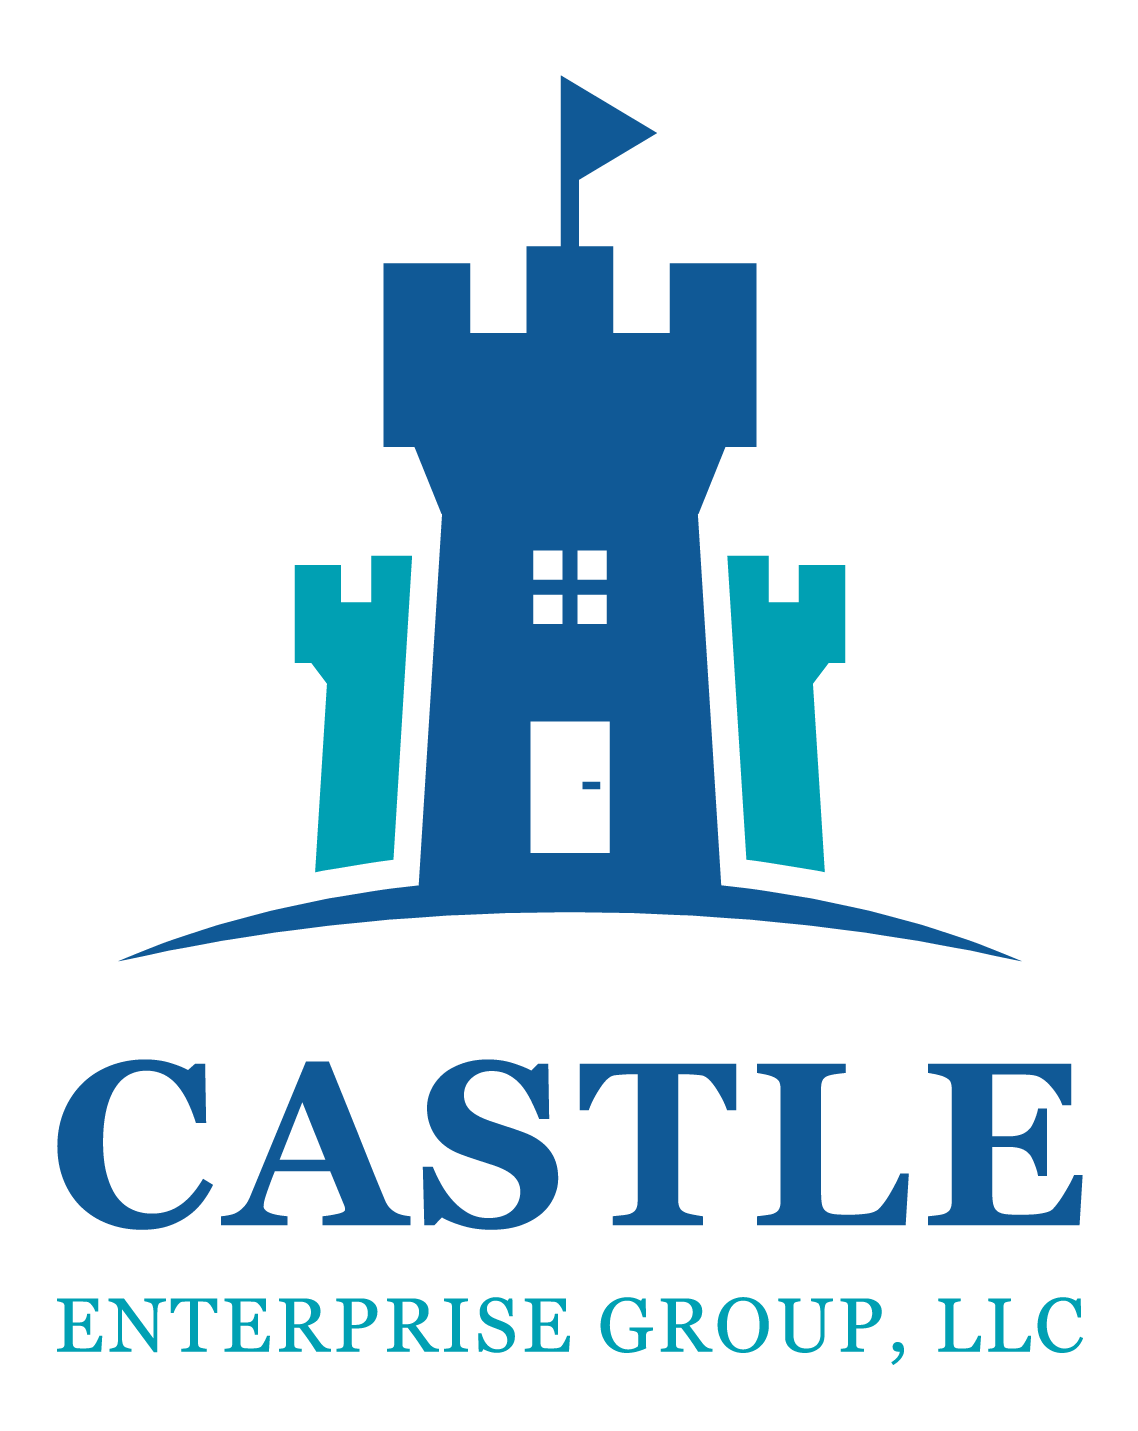 Castle Enterprise Group, LLC